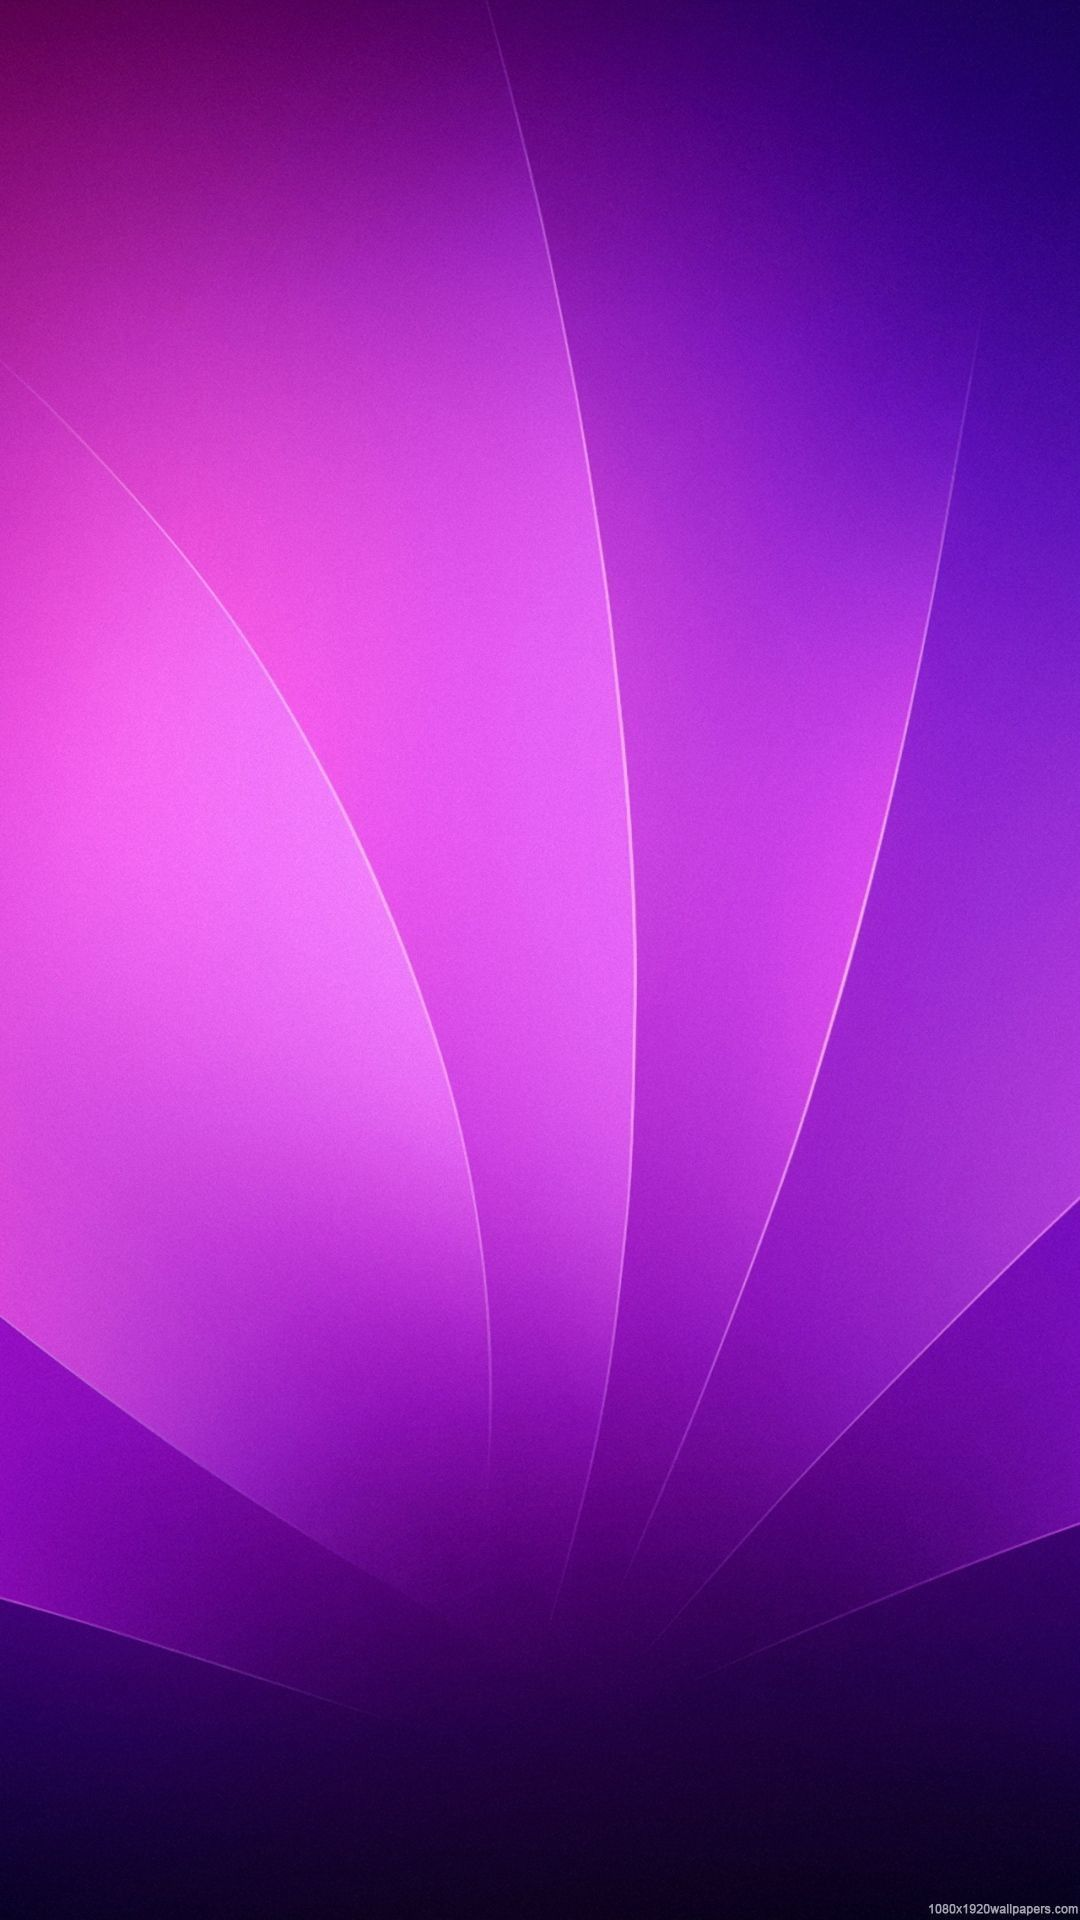 50 Simple Hd Abstract Android Iphone Desktop Hd Backgrounds Wallpapers 1080p 4k 1080x1920 2020